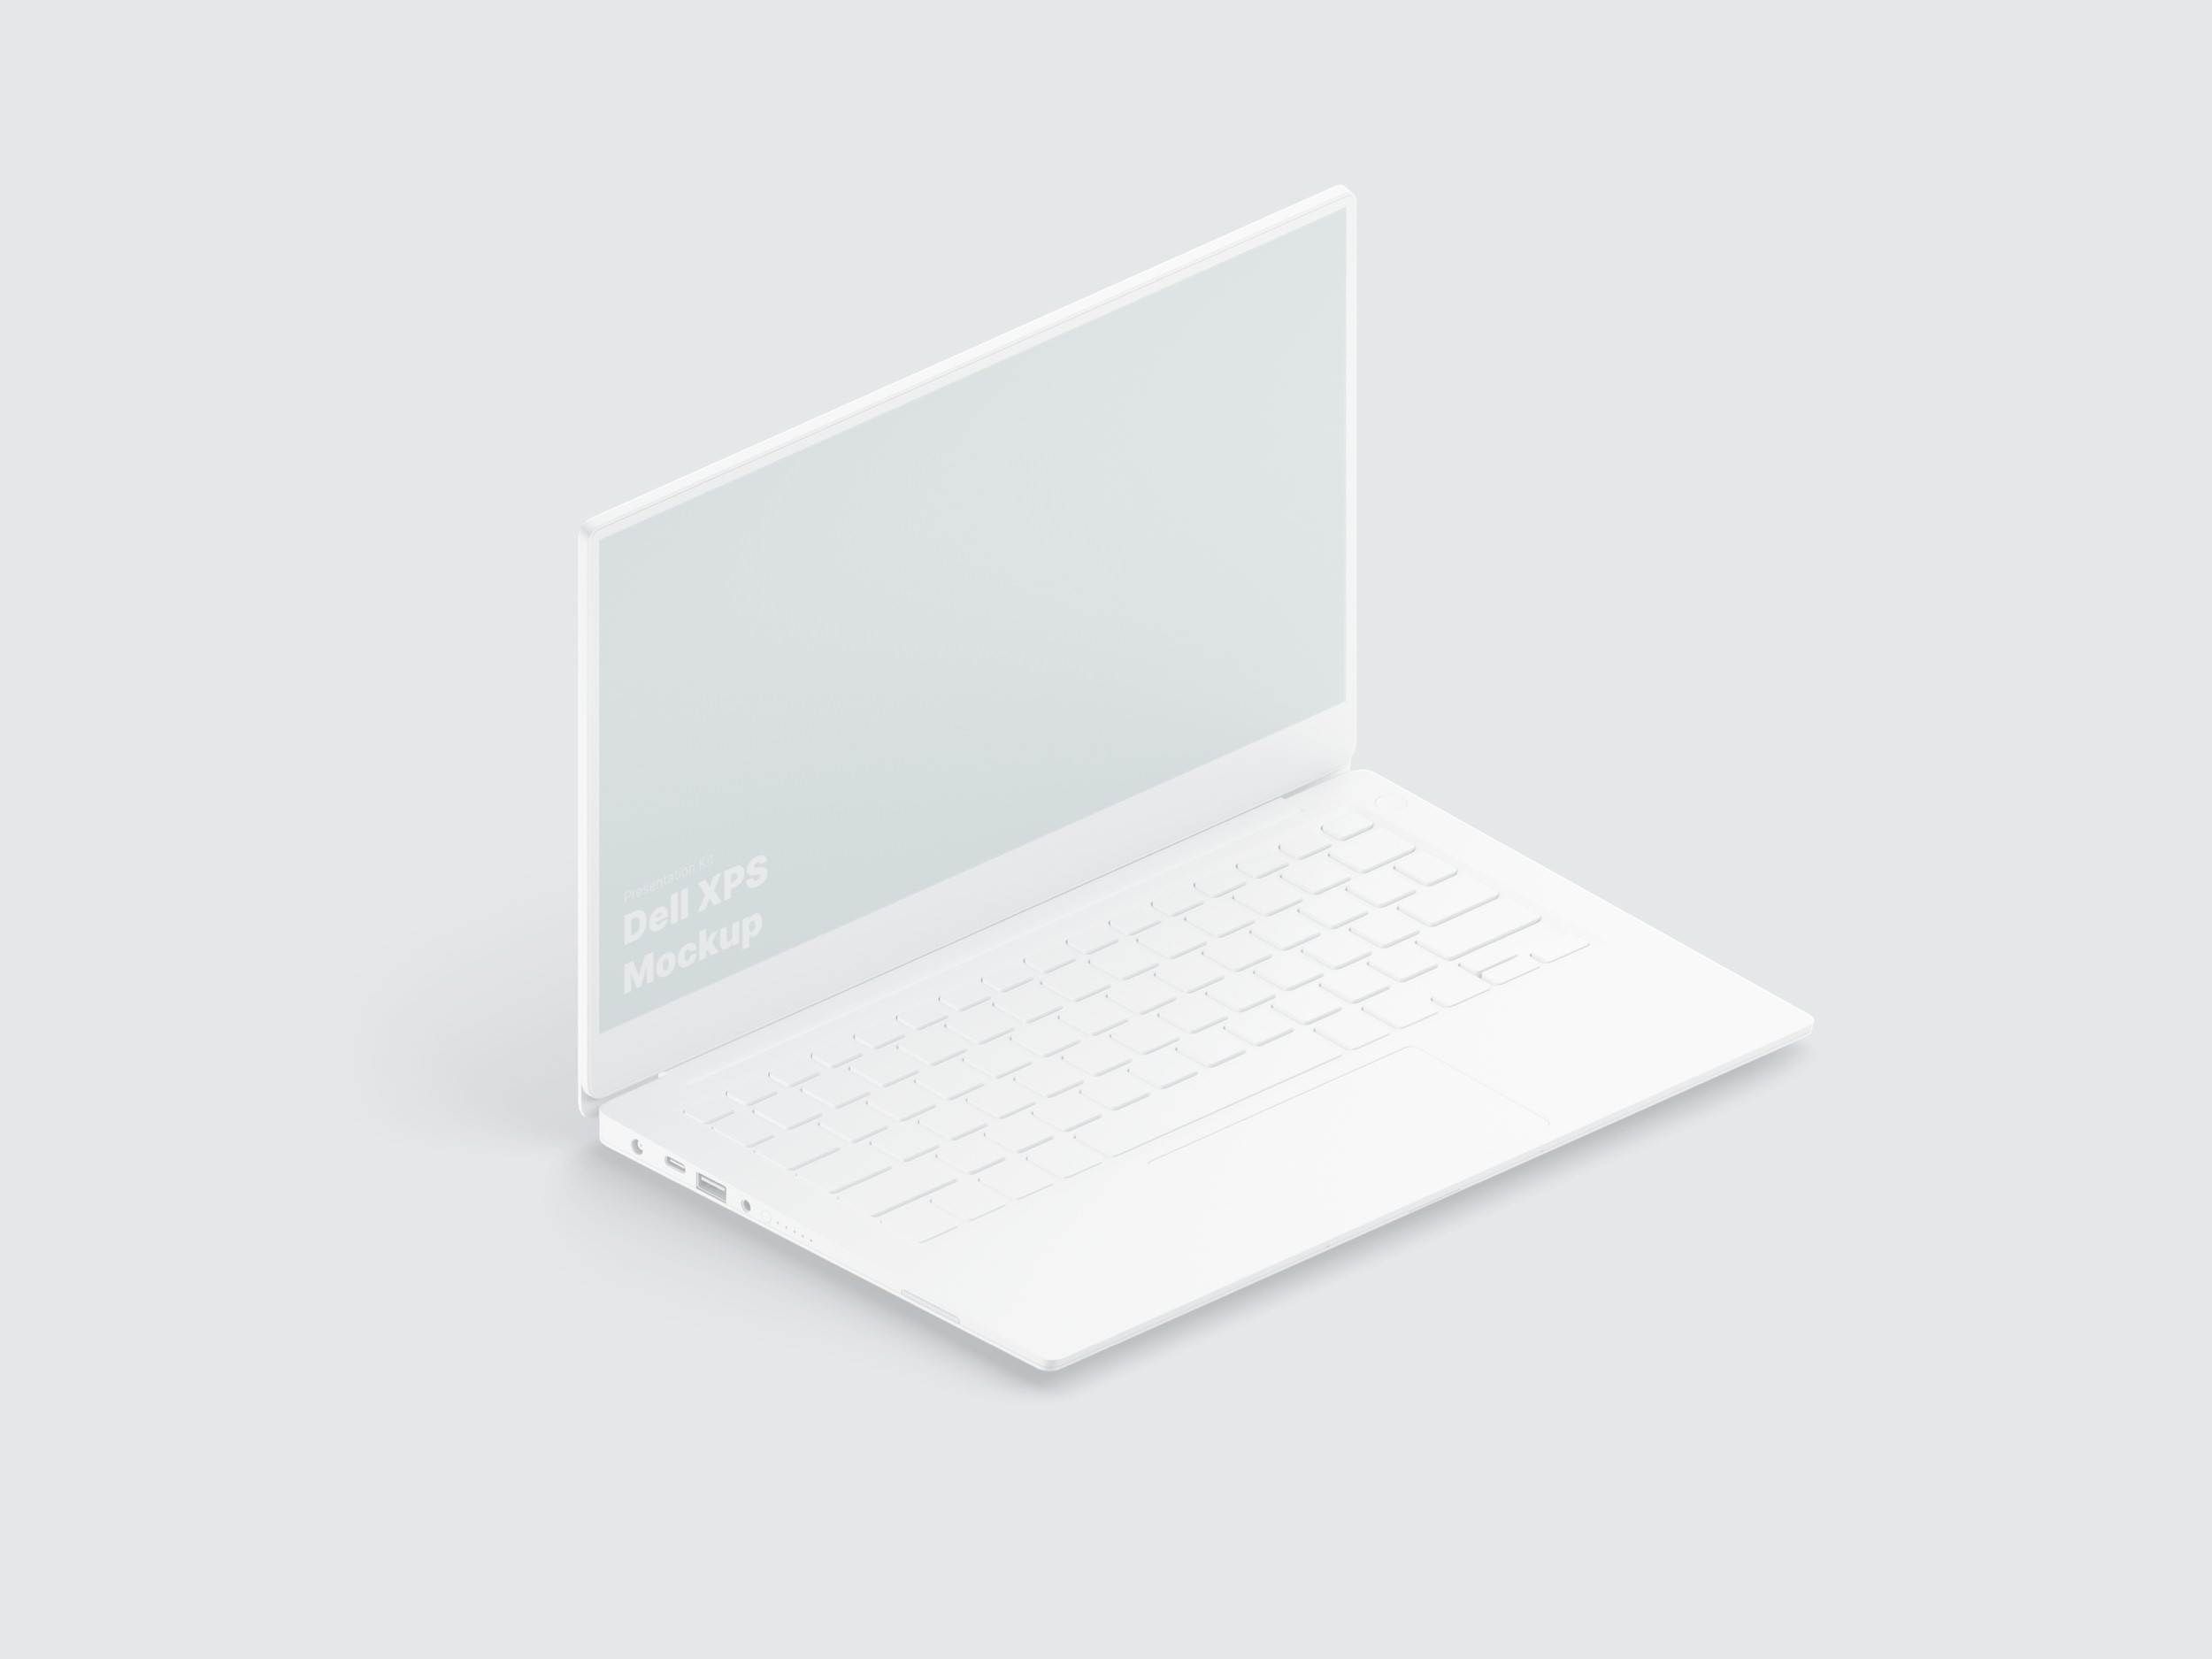 Download Dell XPS Mockup for Sketch, Photoshop and Figma